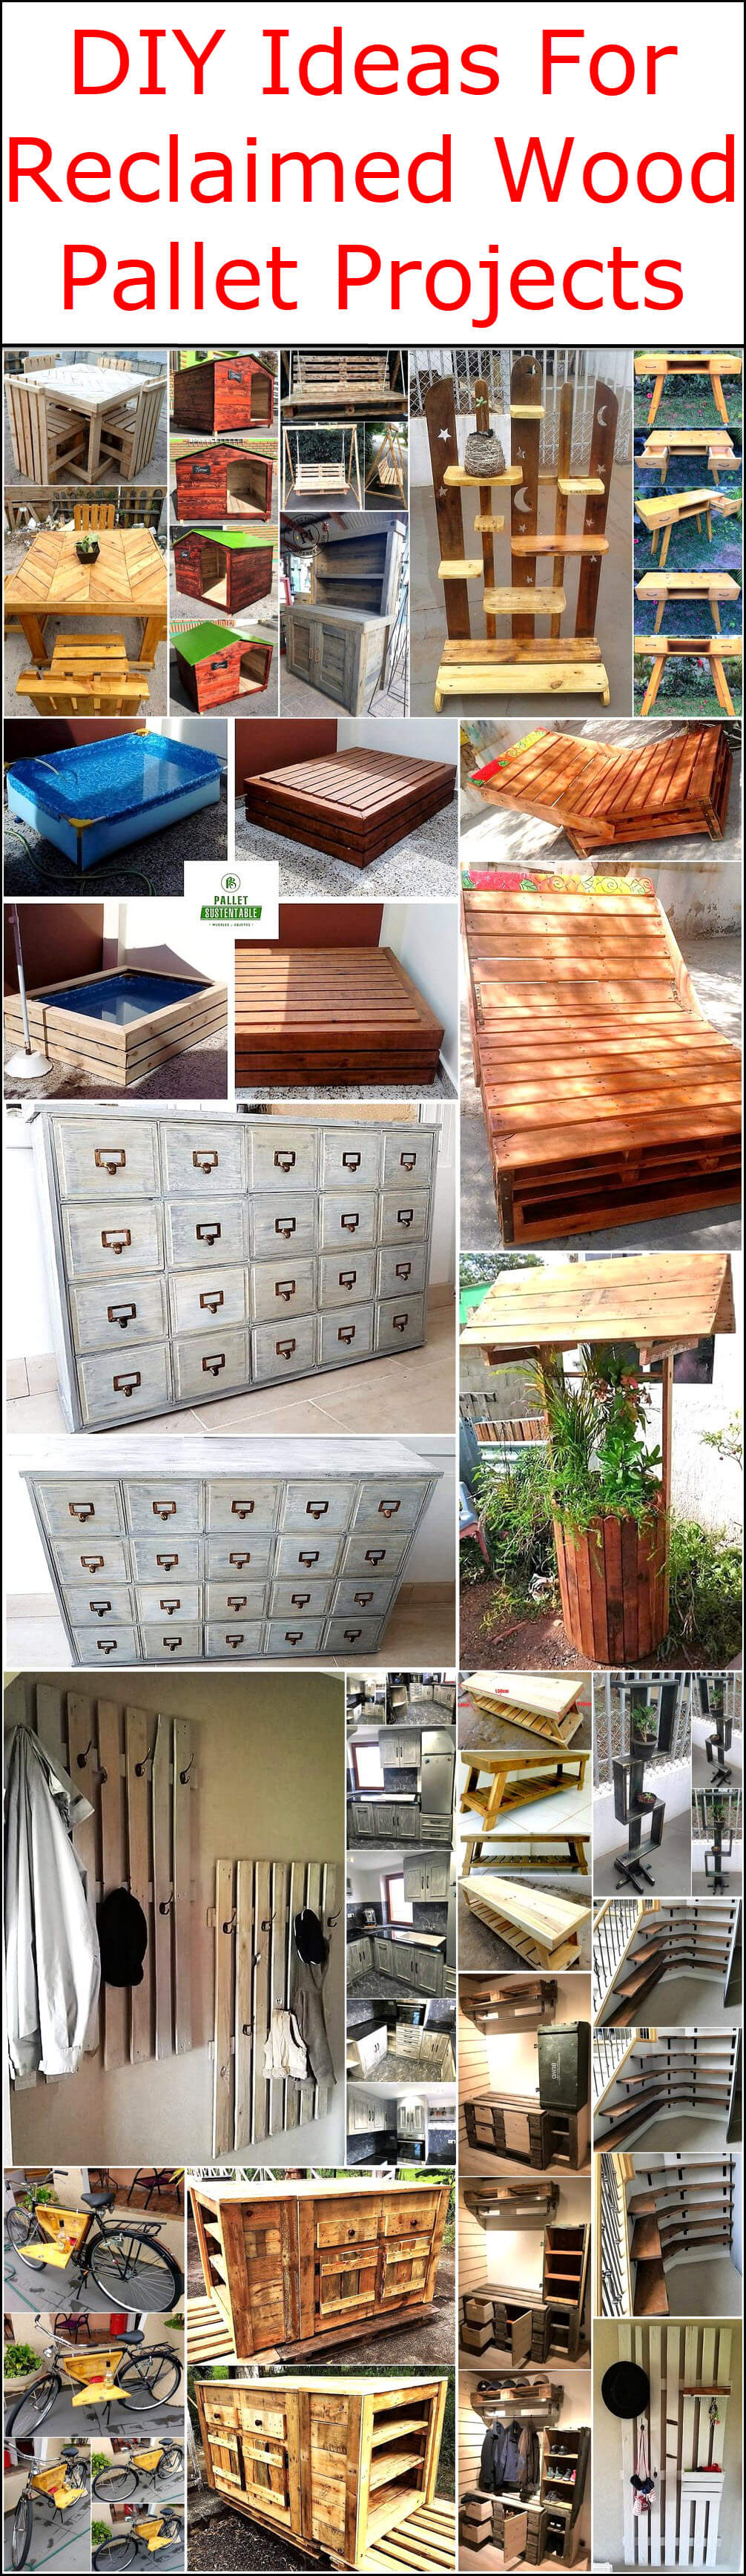 Diy Ideas For Reclaimed Wood Pallet Projects Pallet Ideas